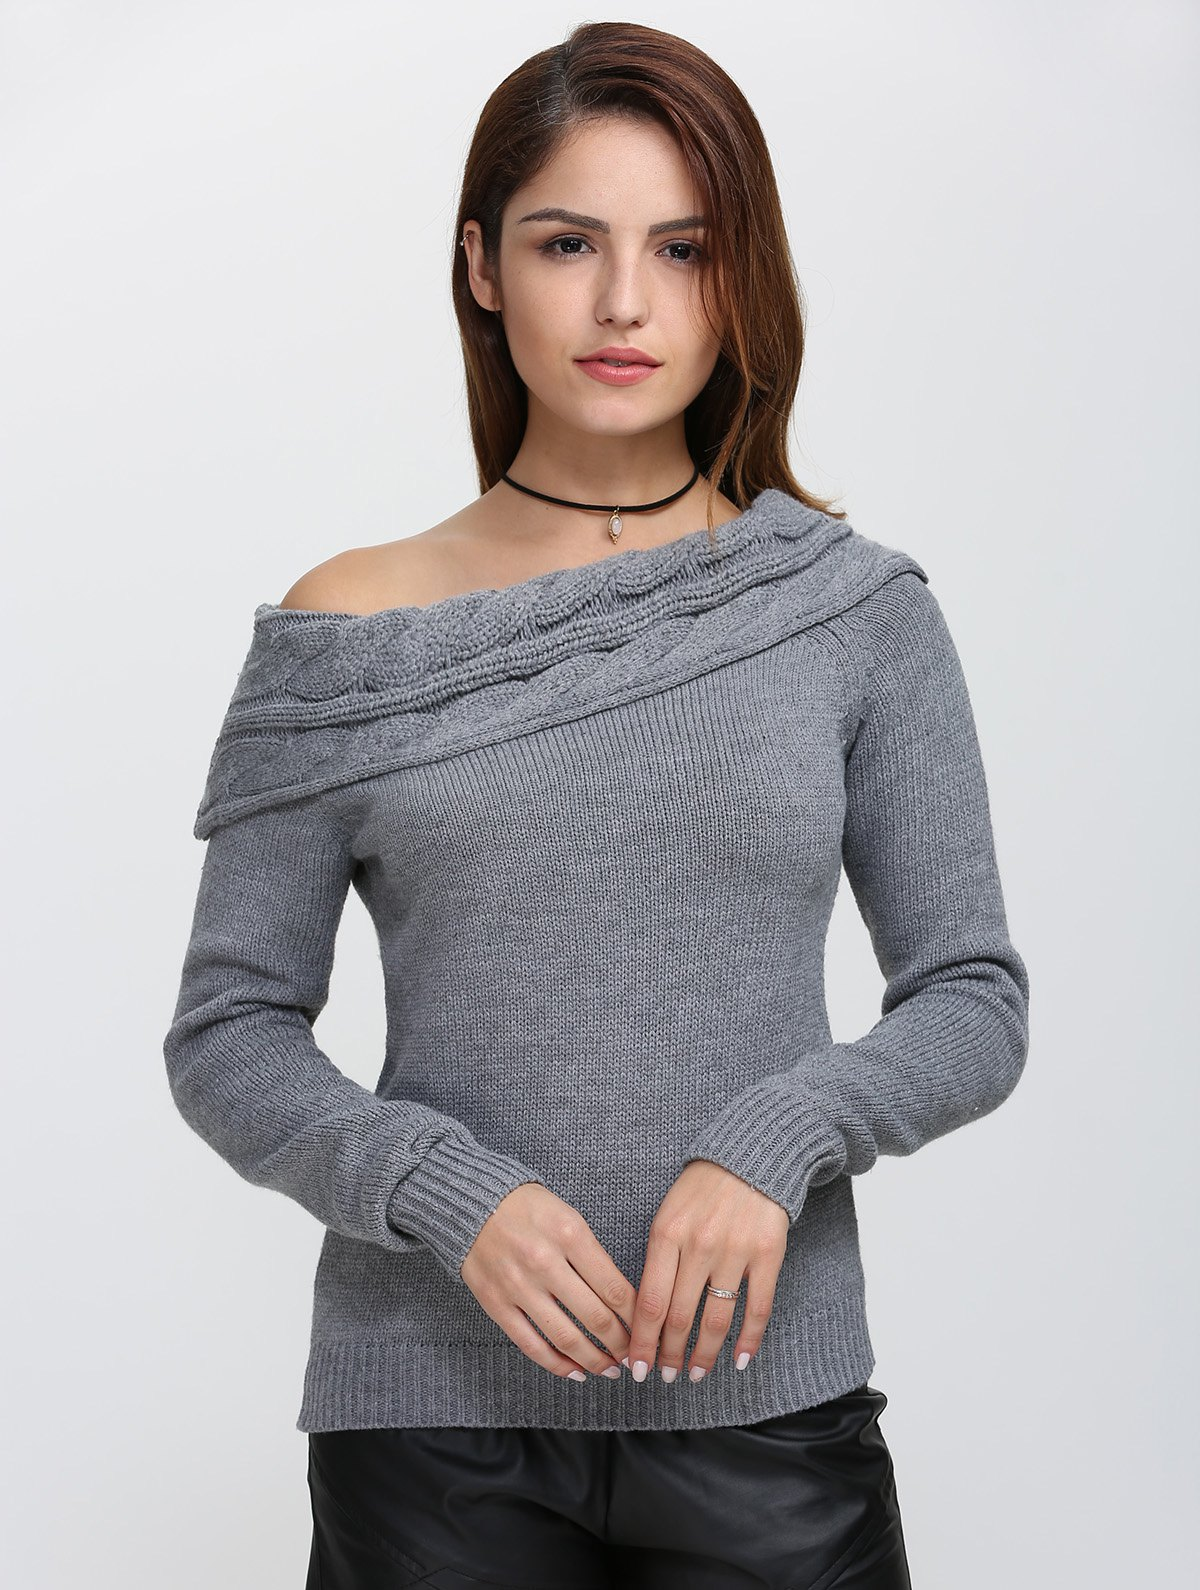 Hot Skew Neck Long Sleeve Pullover Knit Sweater